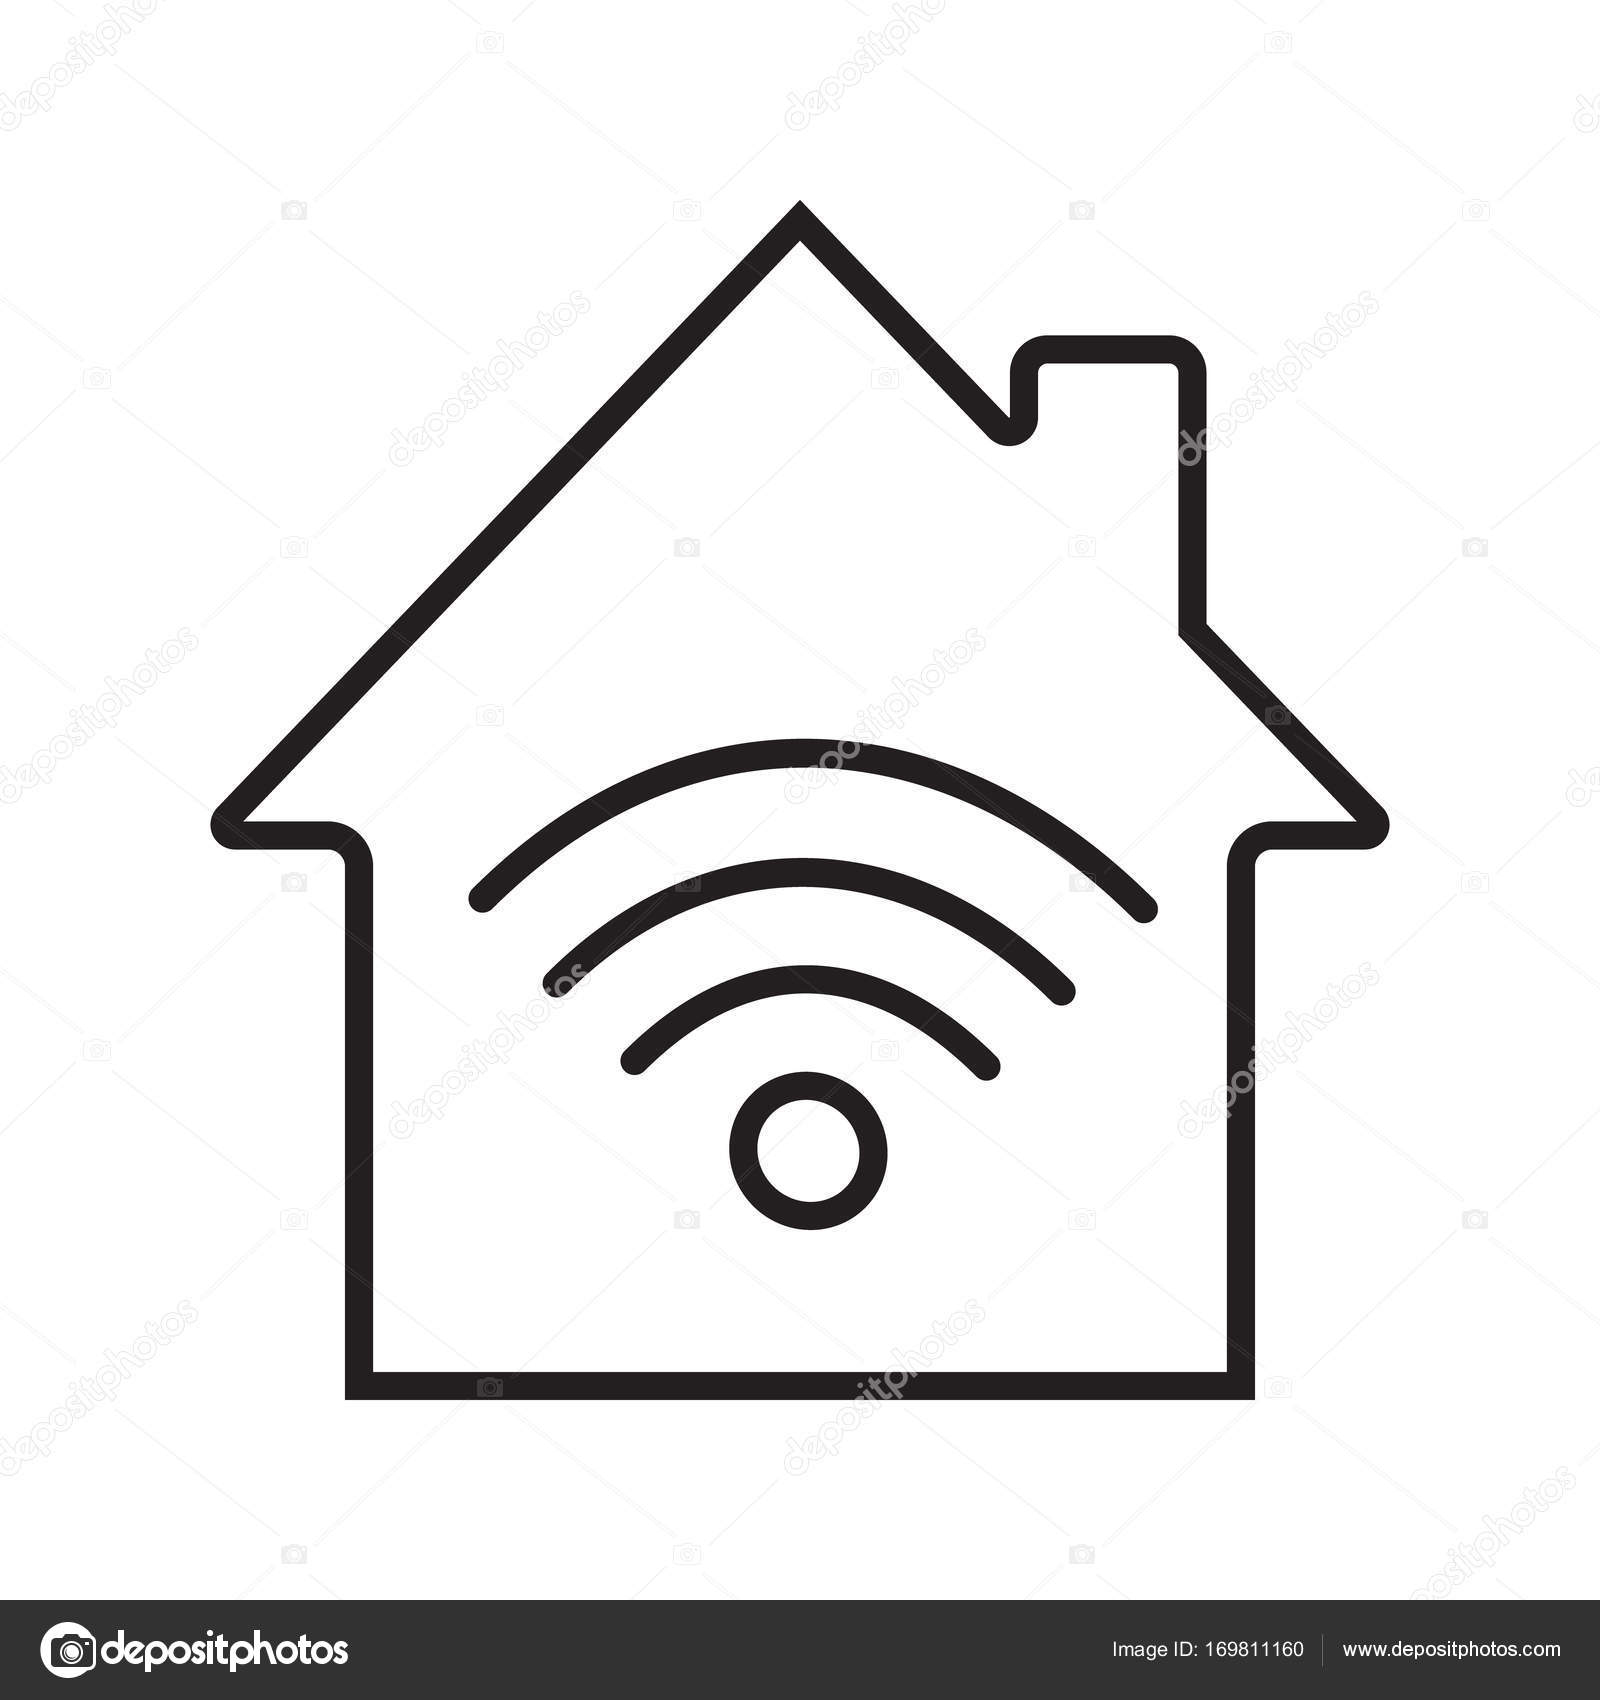 Home internet connection icon stock vector bsd 169811160 home internet connection icon stock vector buycottarizona Images